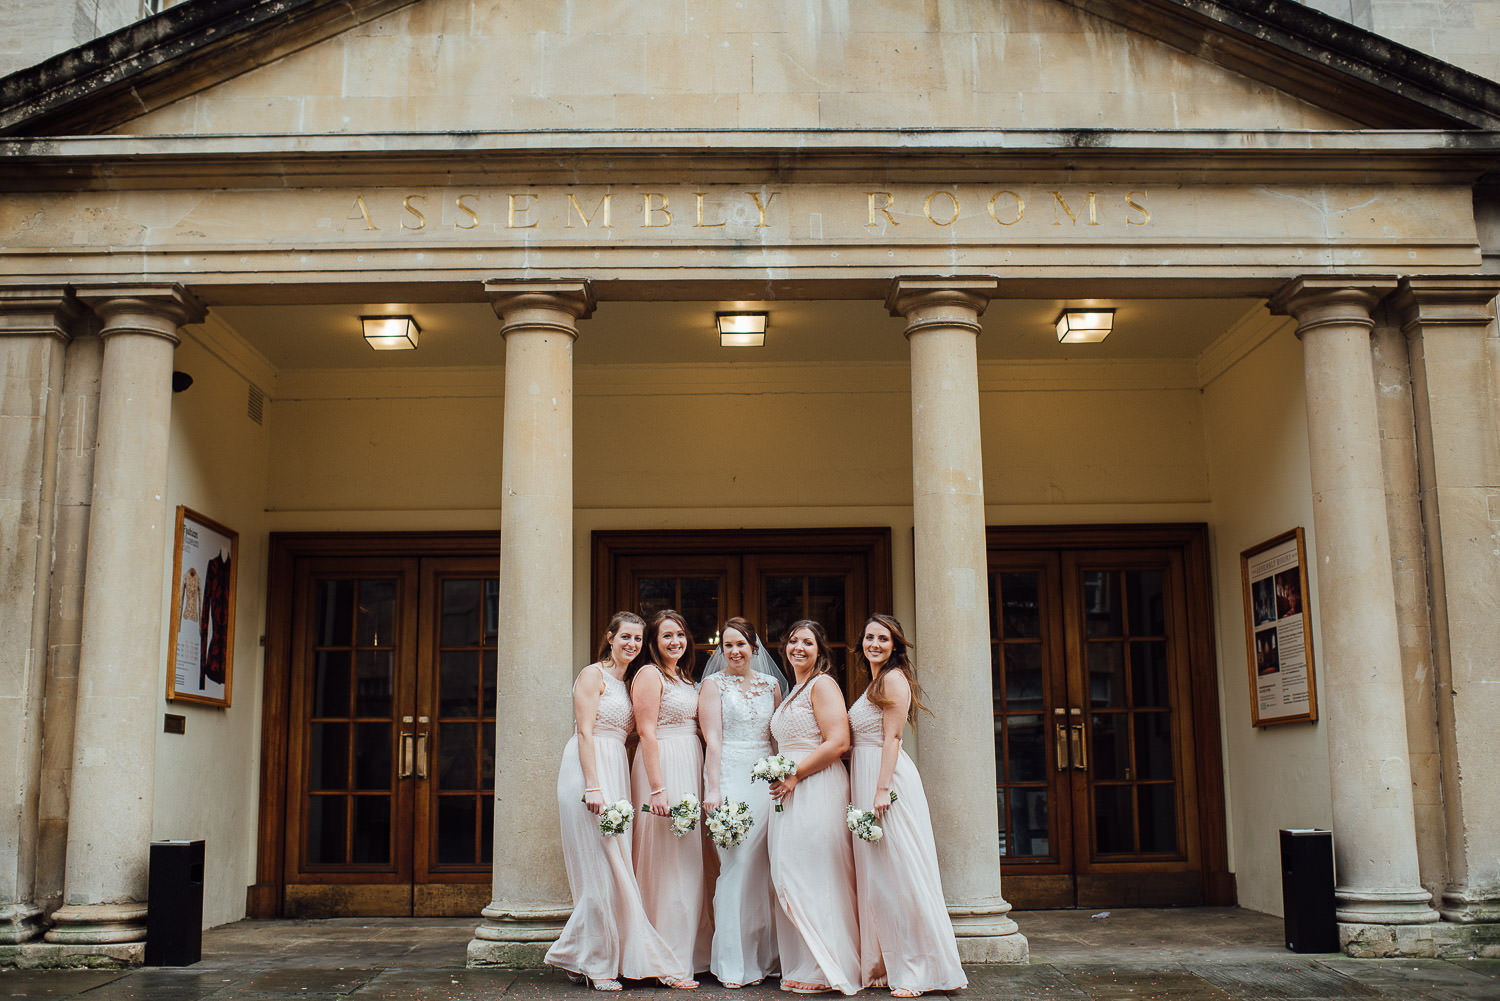 bridesmaids outside the assembly rooms bath by bath wedding photographer the shannons photography